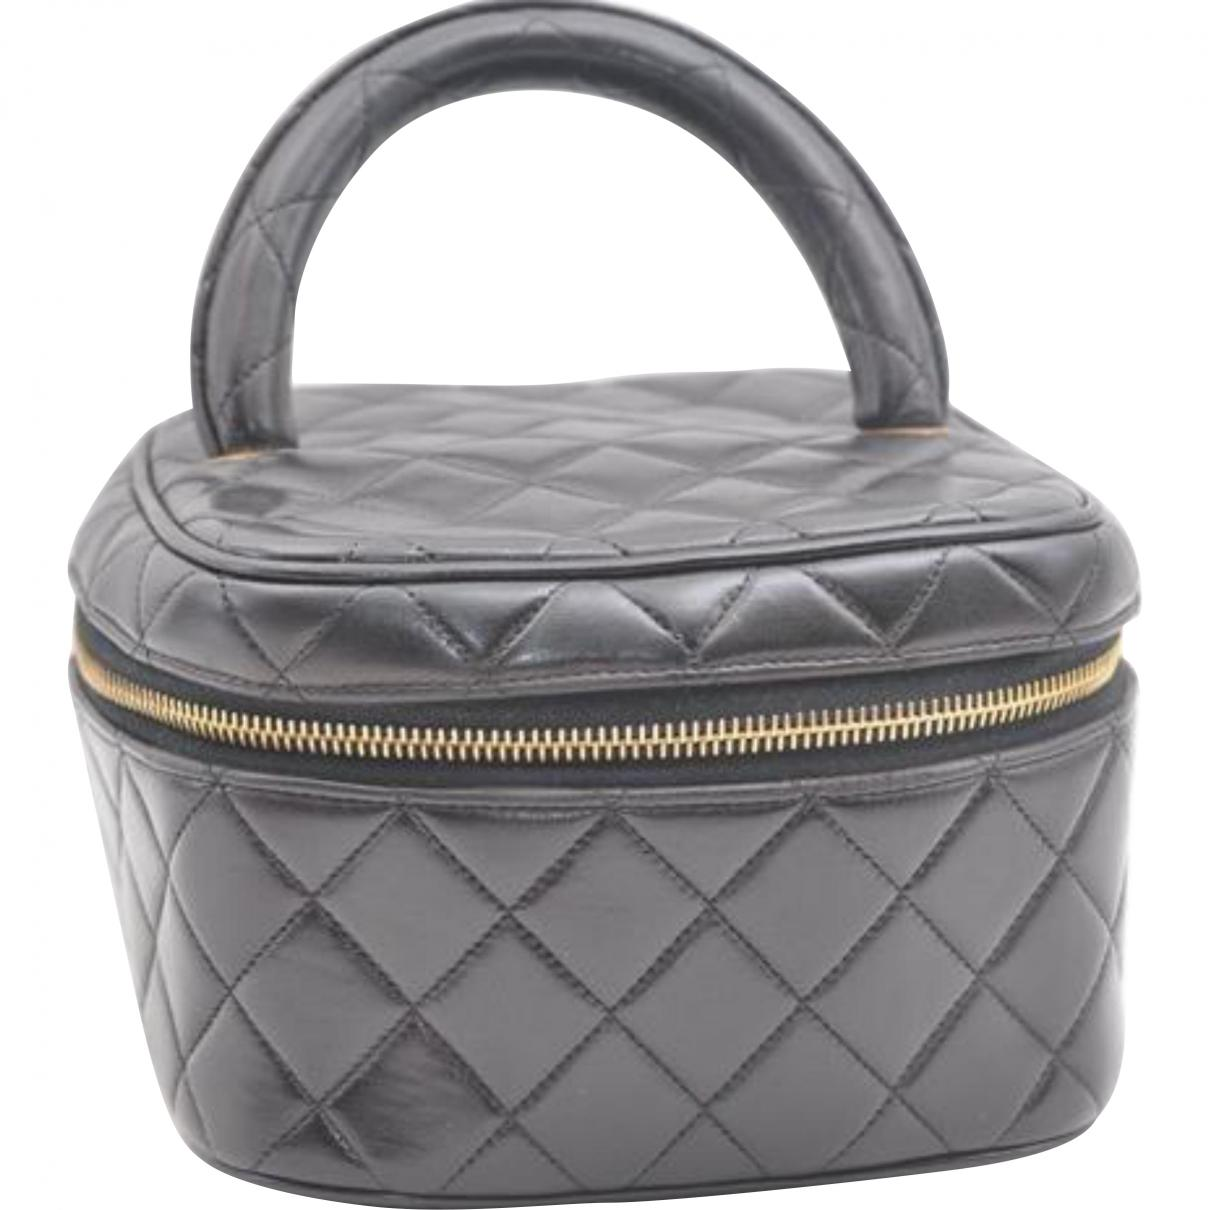 df55f4506042 Chanel. Women s Black Leather Vanity Case.  520 From Vestiaire Collective